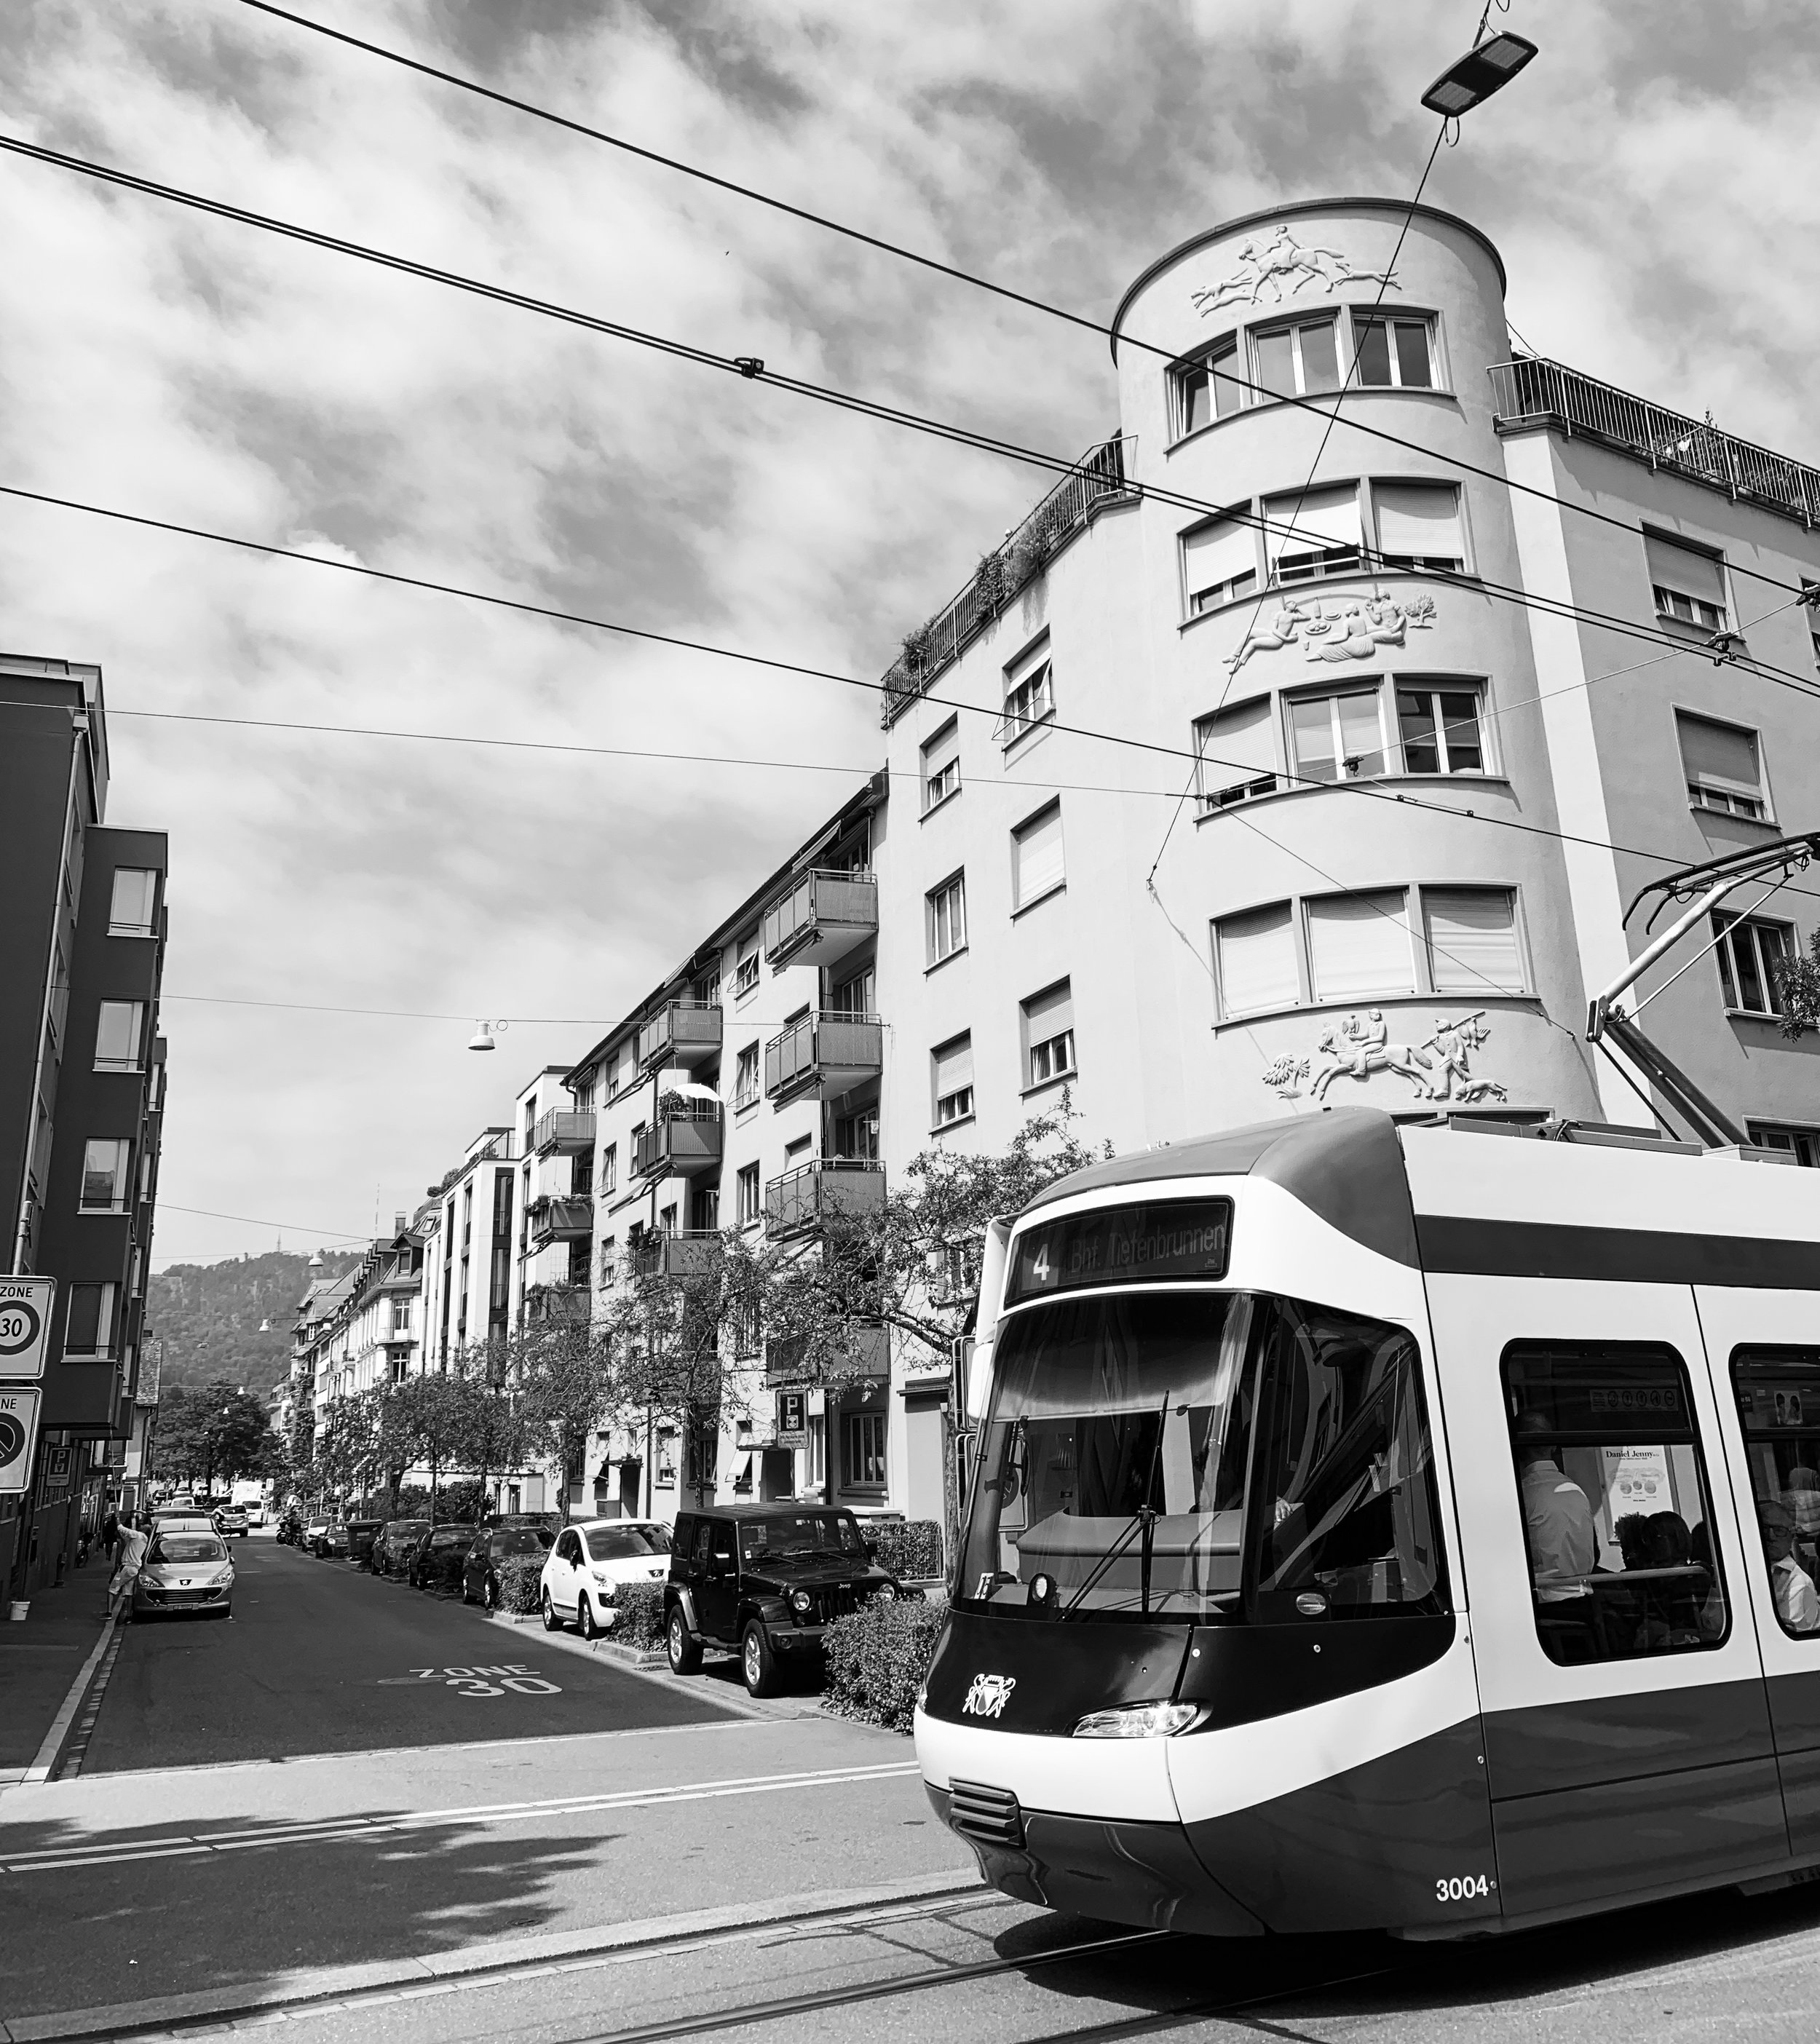 Seefeld, Zürich. People, life, trams, commerce, bikes, shade, clean air and easy access to lake Zürichsee.